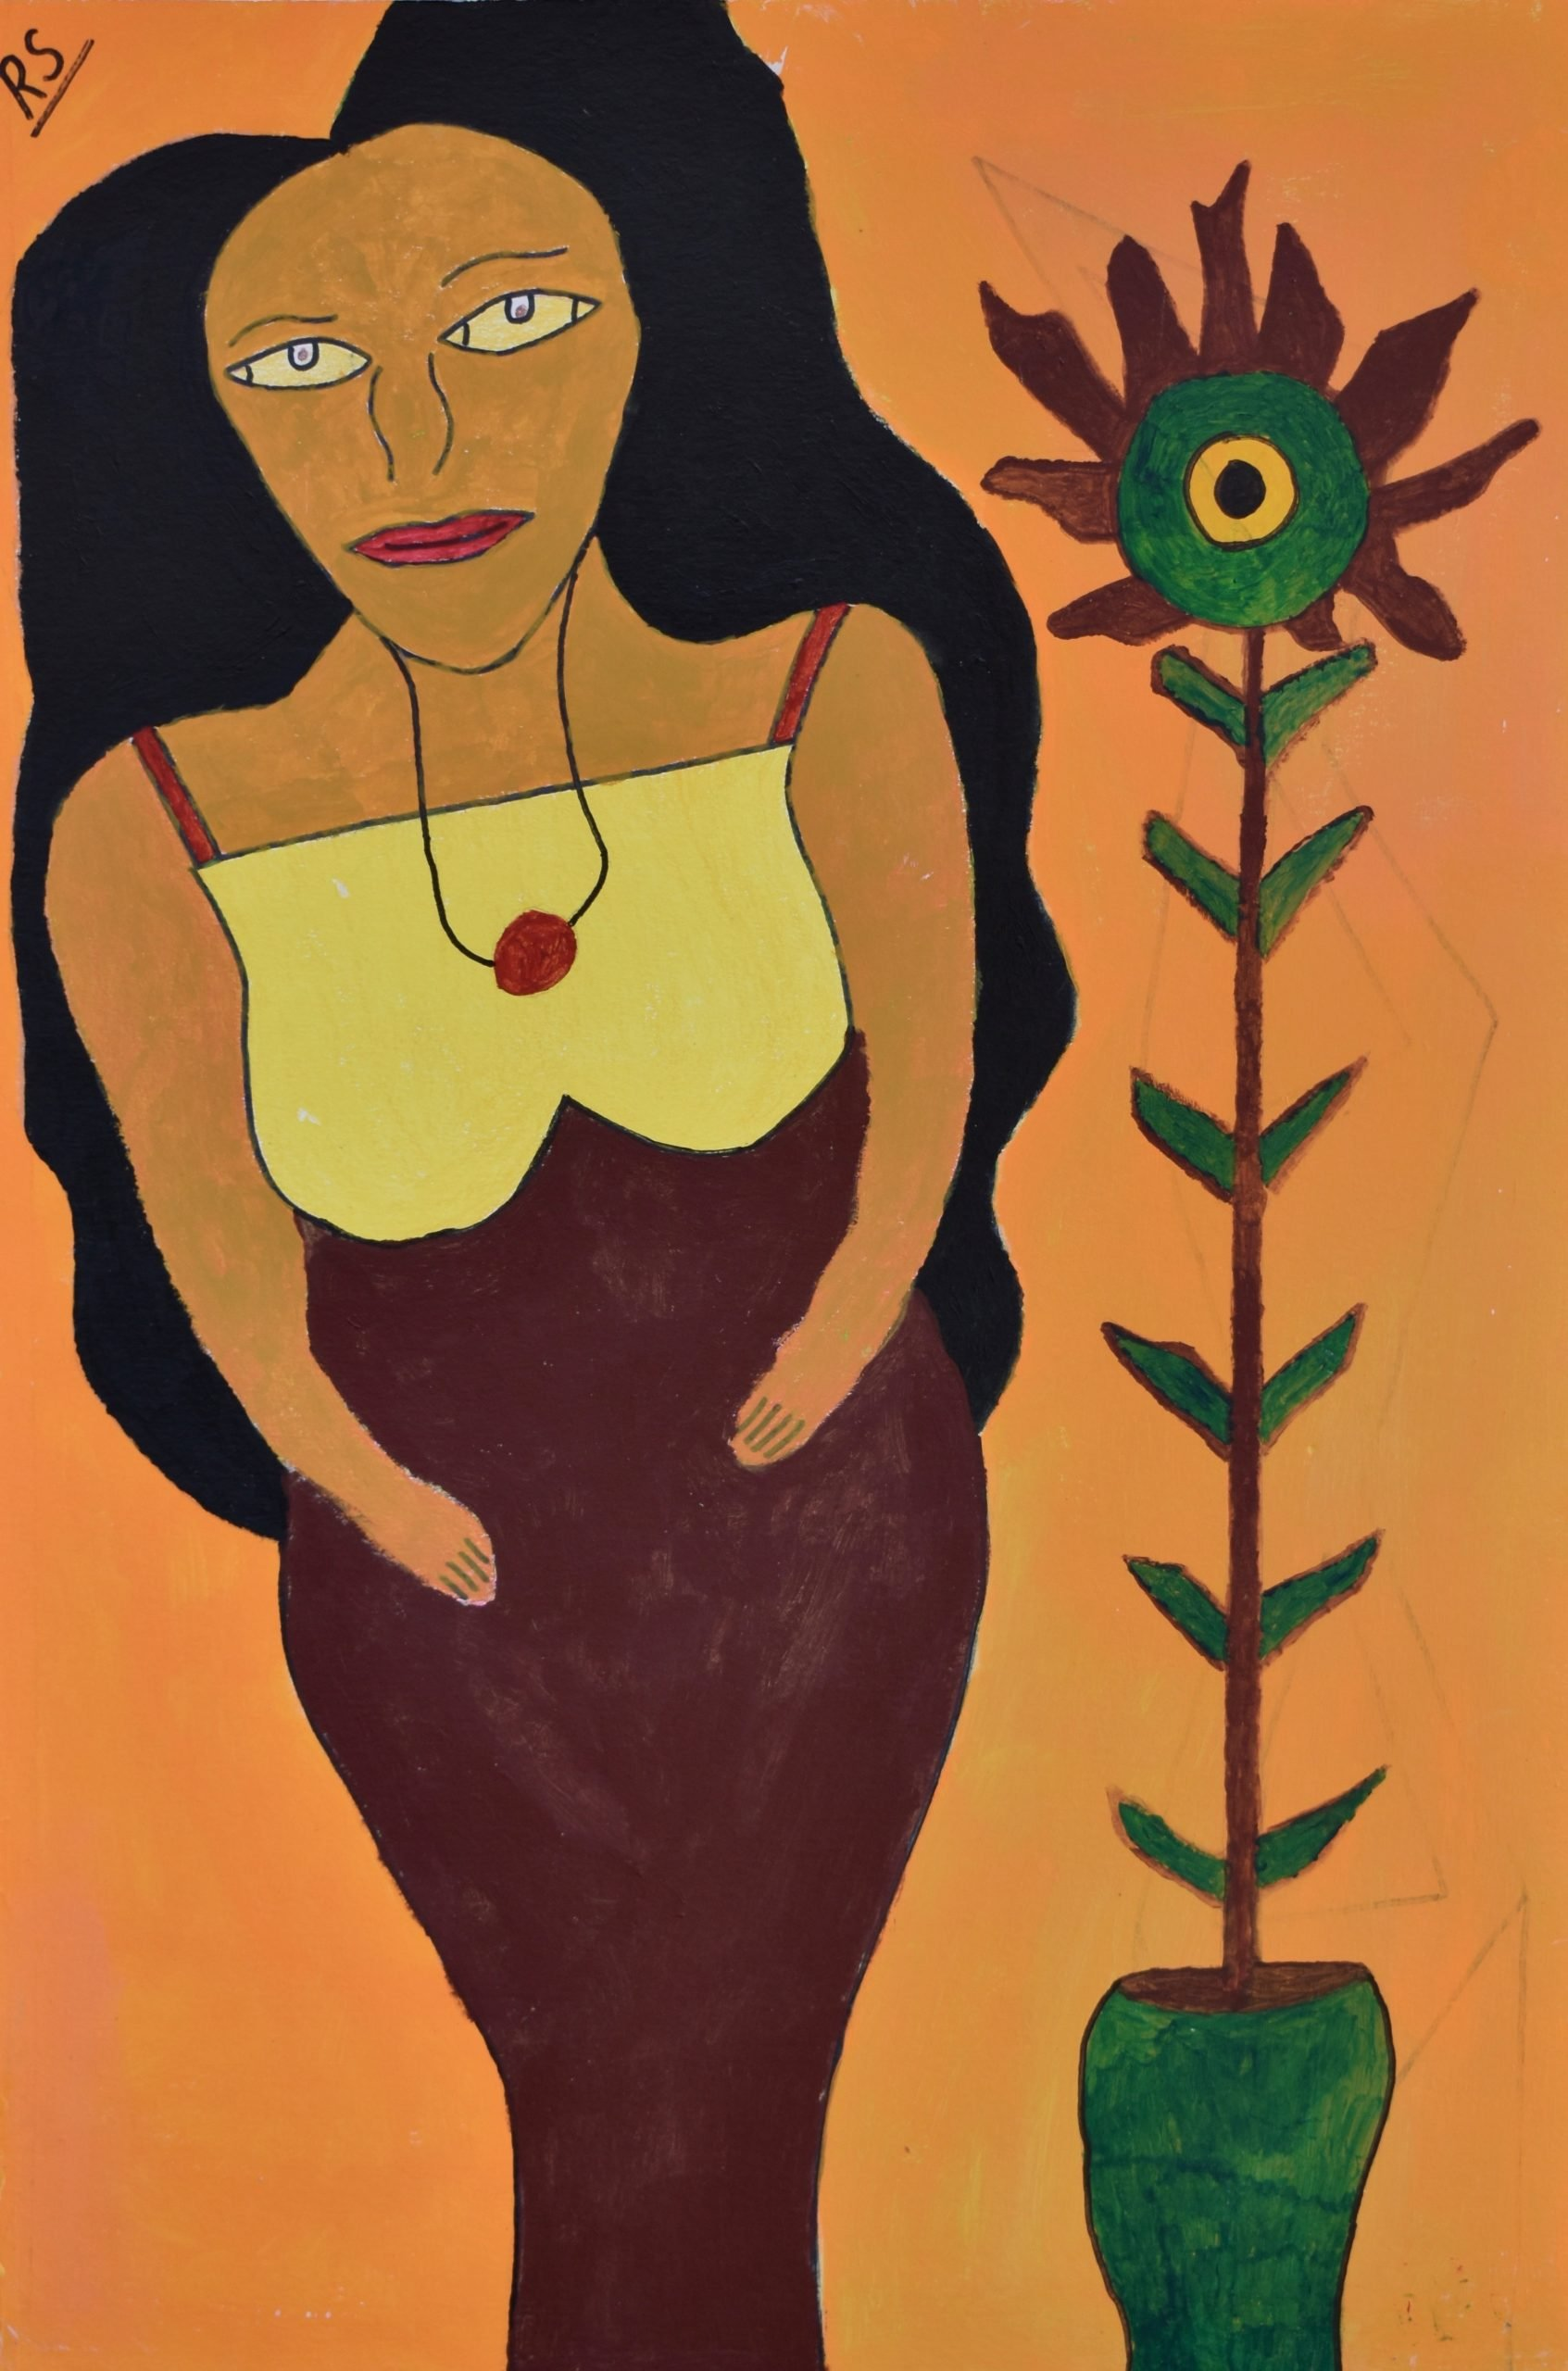 A portrait painting of a woman with long wavy dark hair standing beside a tall flowering plant on a block orange background. The woman wears a yellow and brown dress with a small pendant necklace. The plant stands straight in a green plant pot. It has short leaves and rust coloured petals.